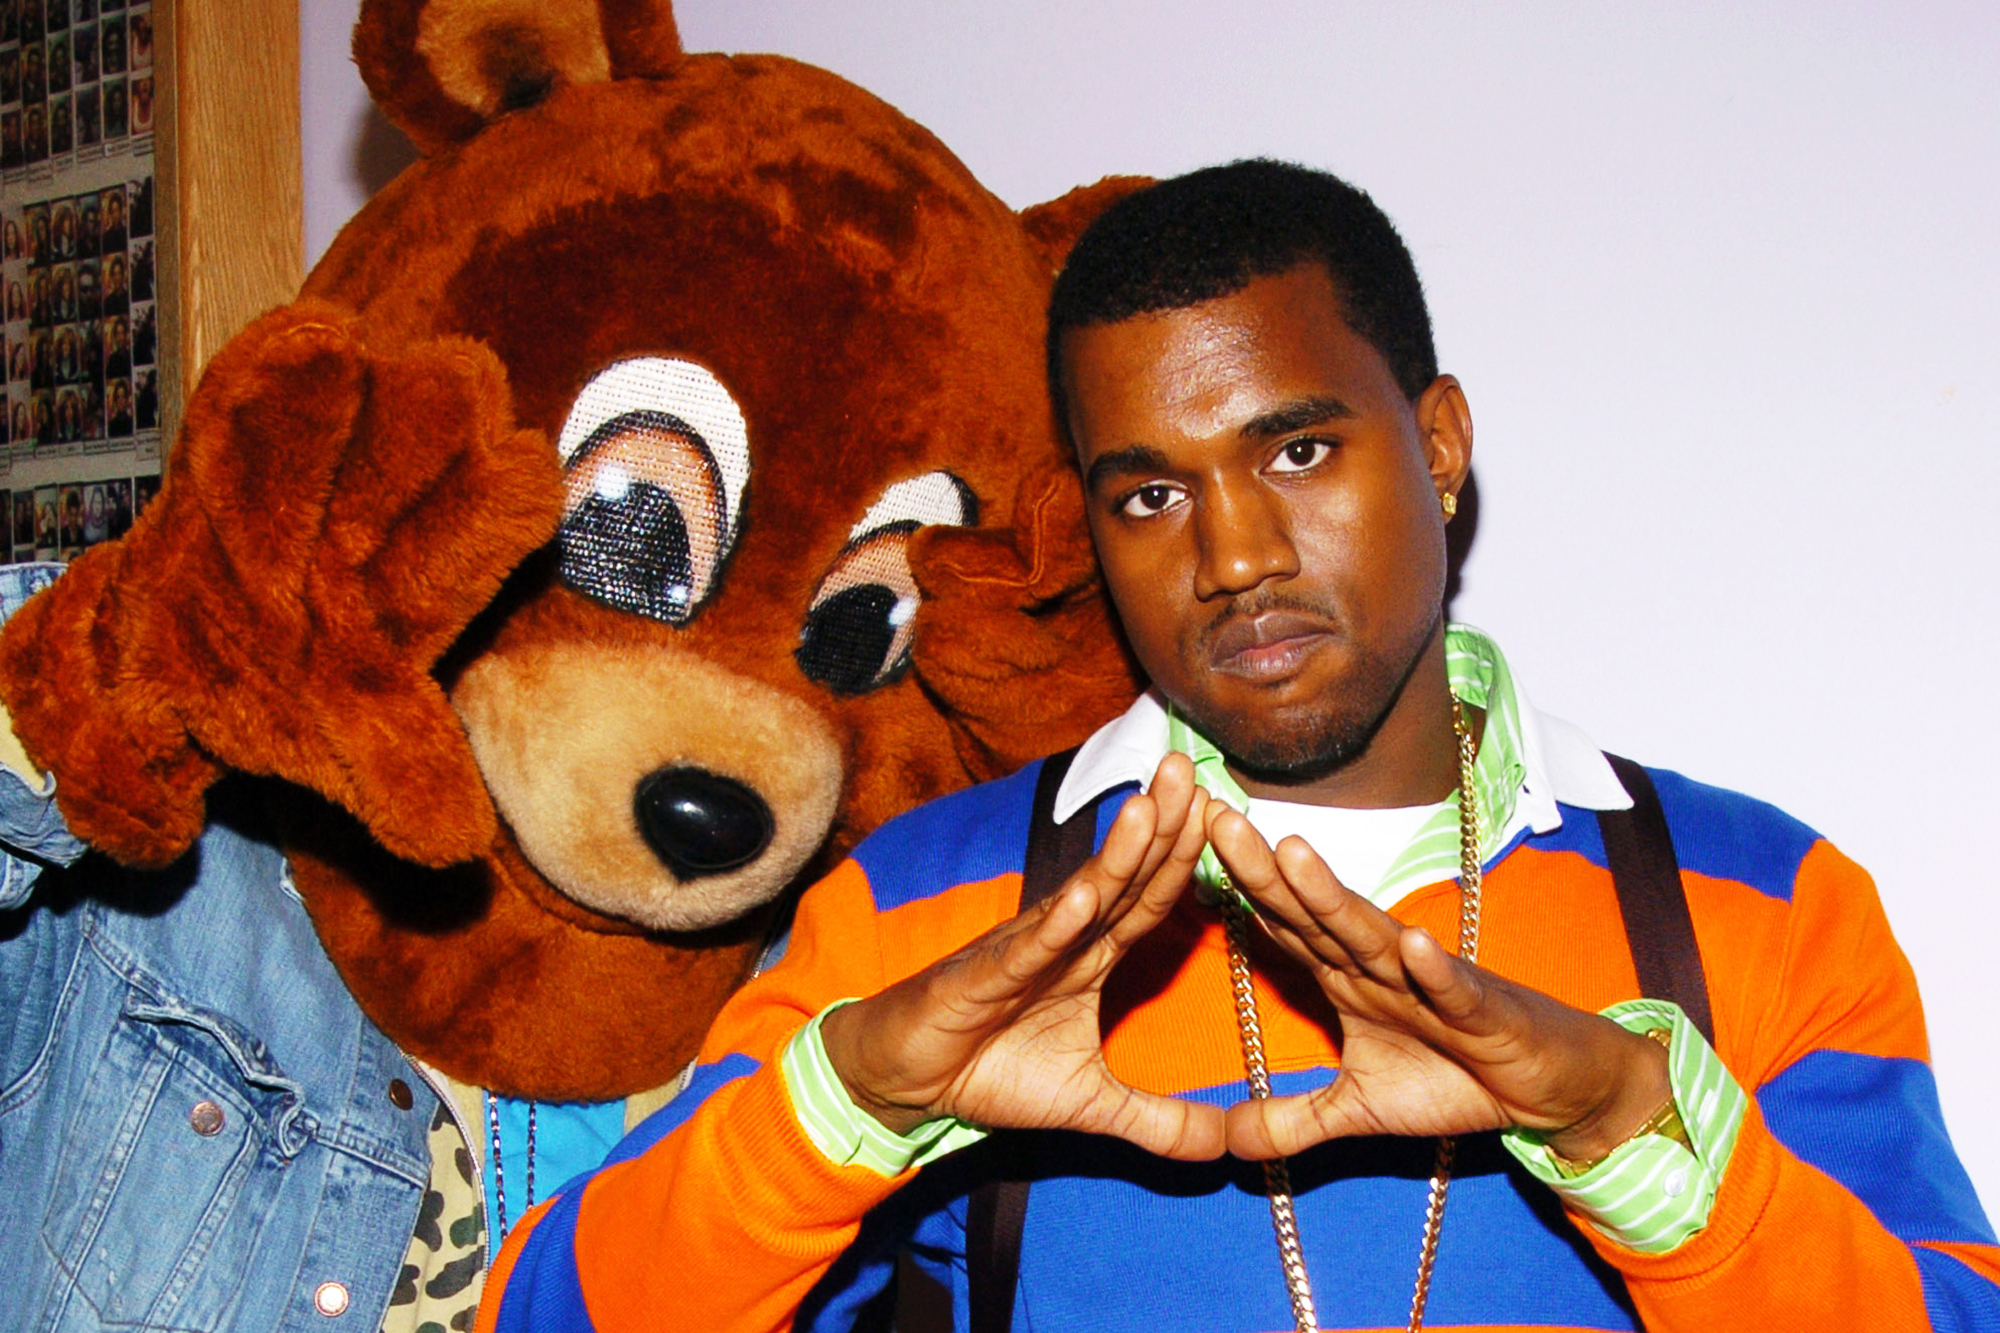 Kanye West and Drop-Out Bear promote The College Dropout at TRL in New York City, on Feb. 10, 2004.